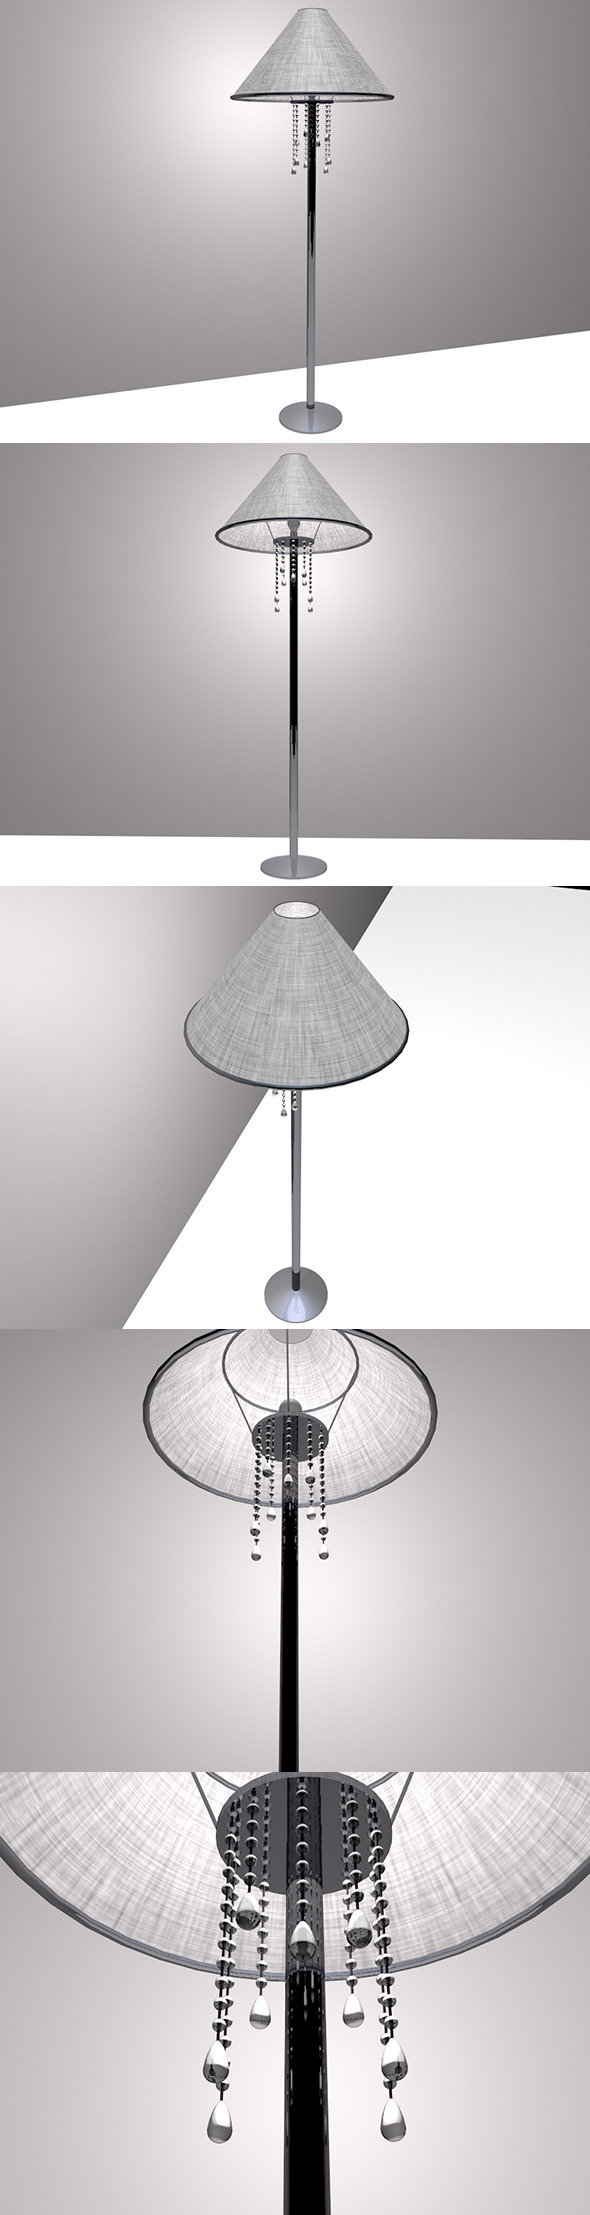 Lamp Shade - 3DOcean Item for Sale